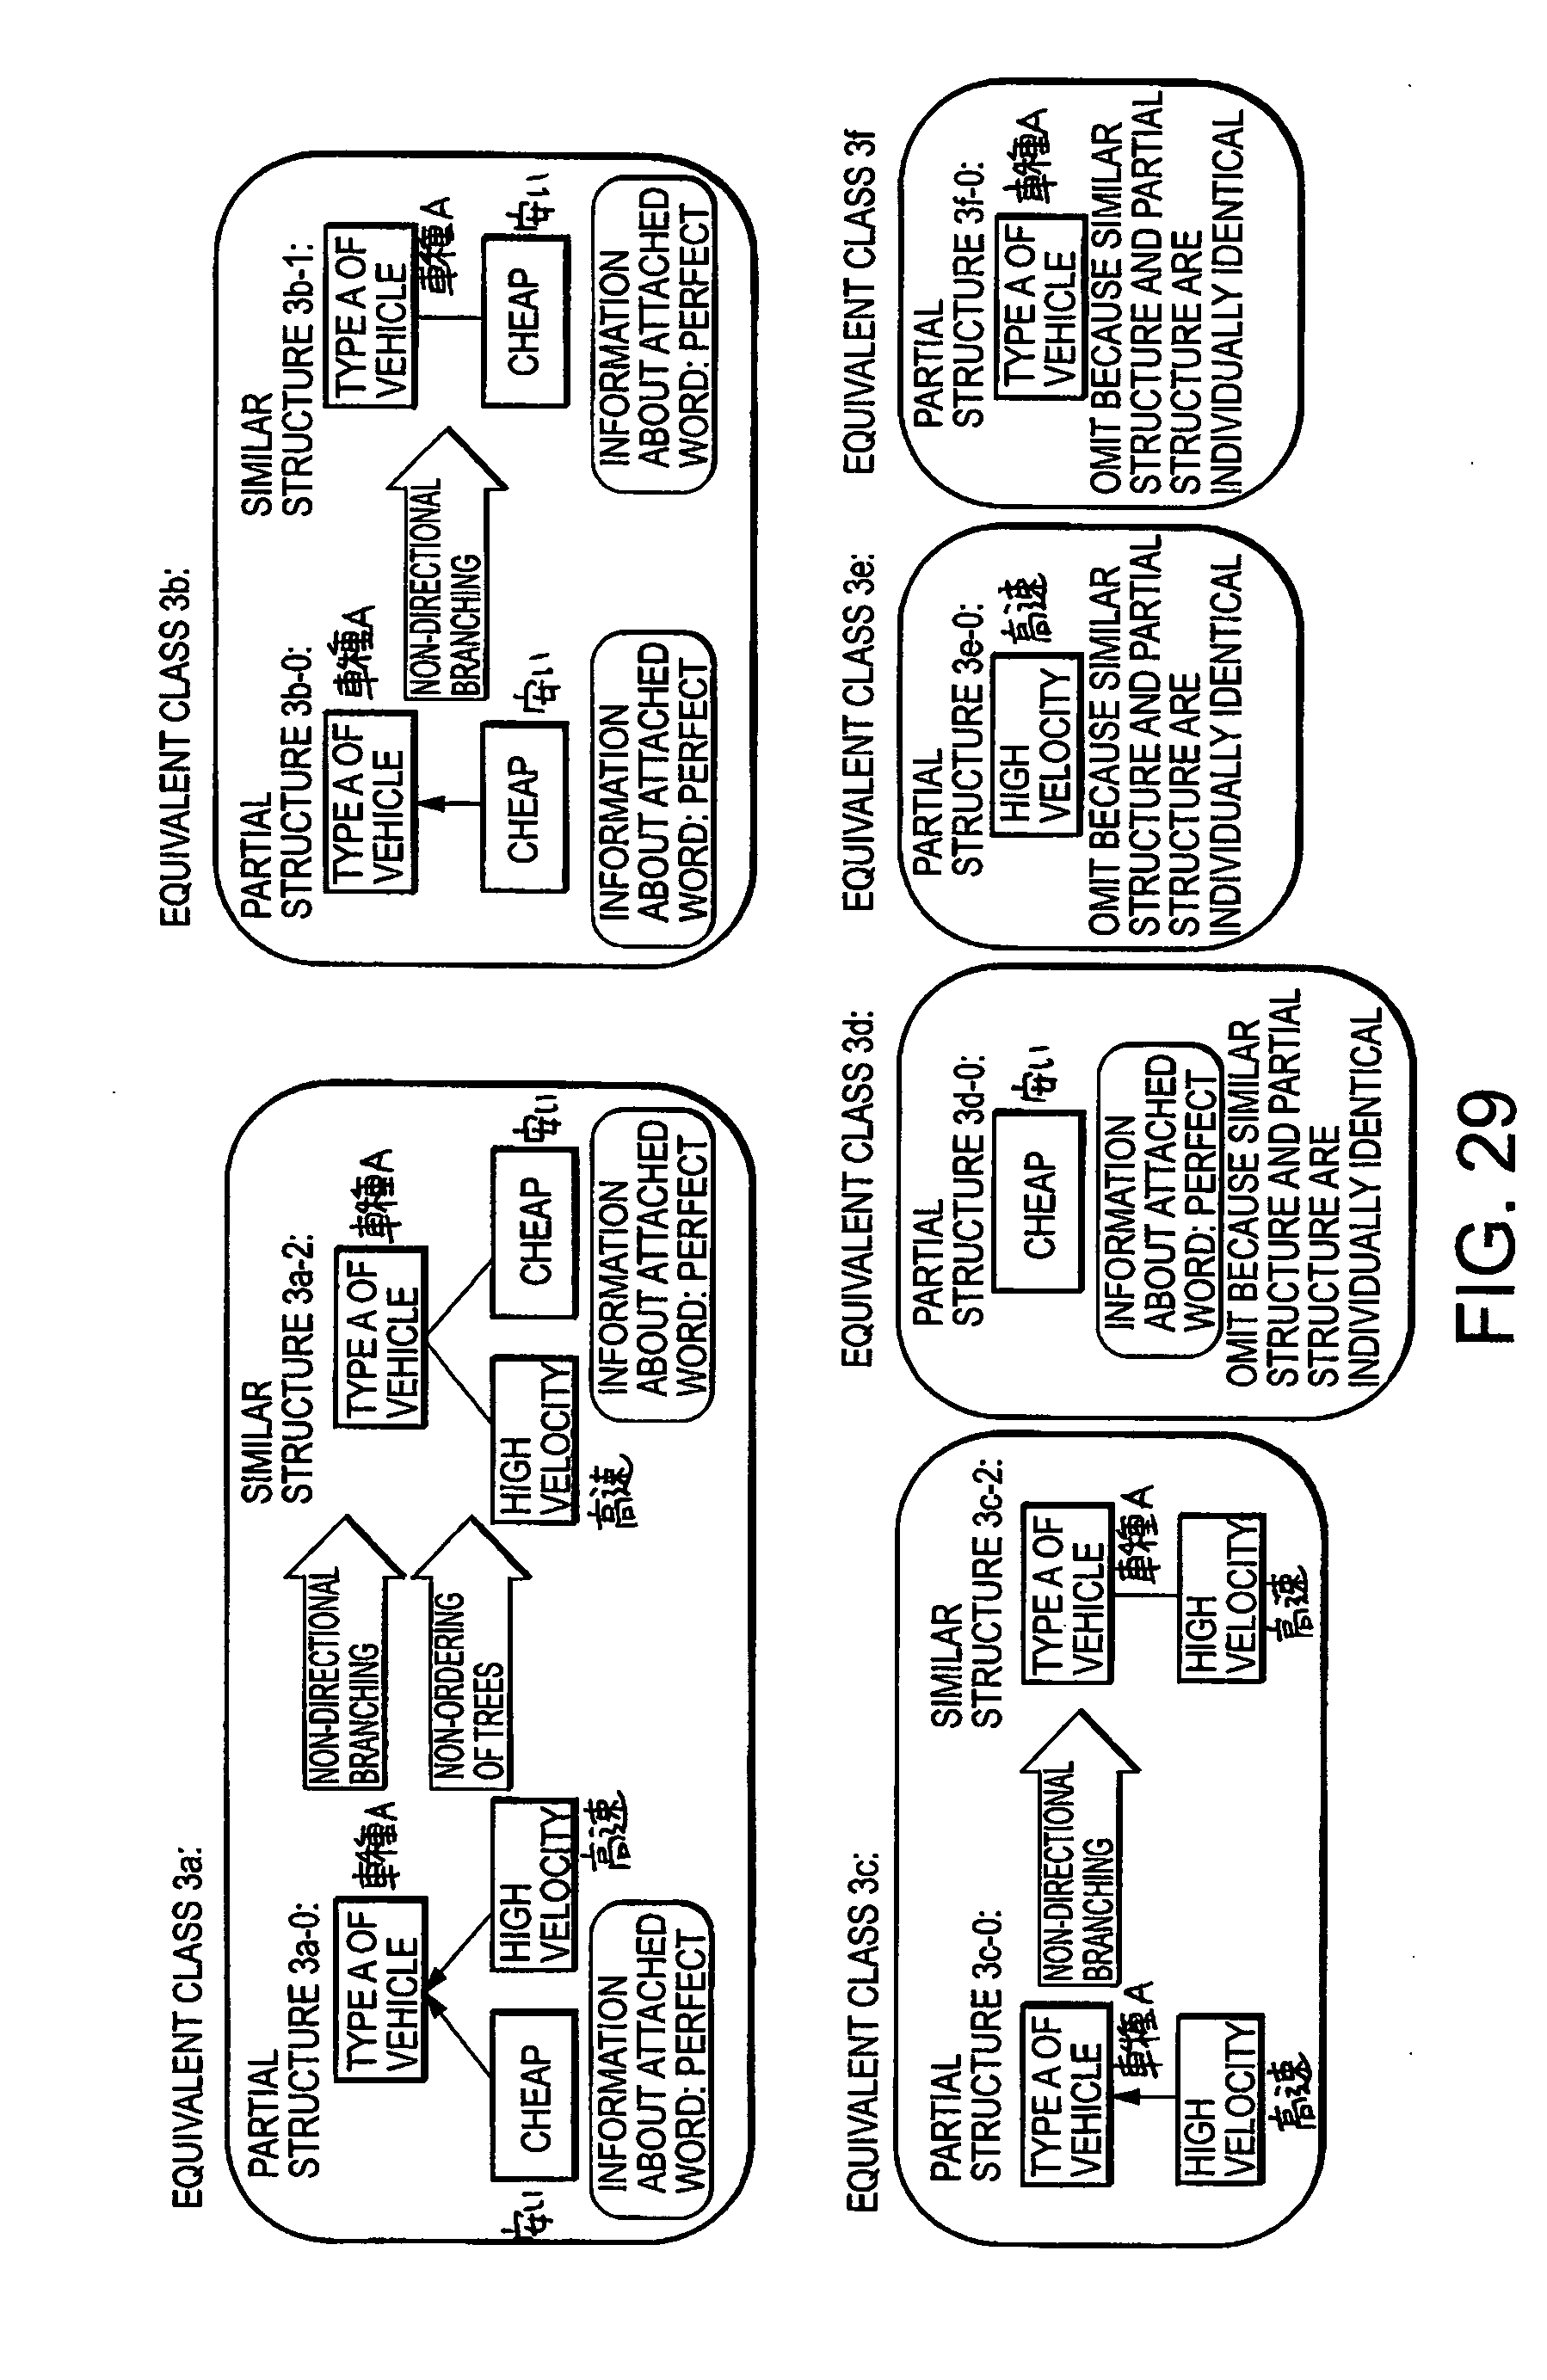 Patent US20070233458 - Text Mining Device, Method Thereof